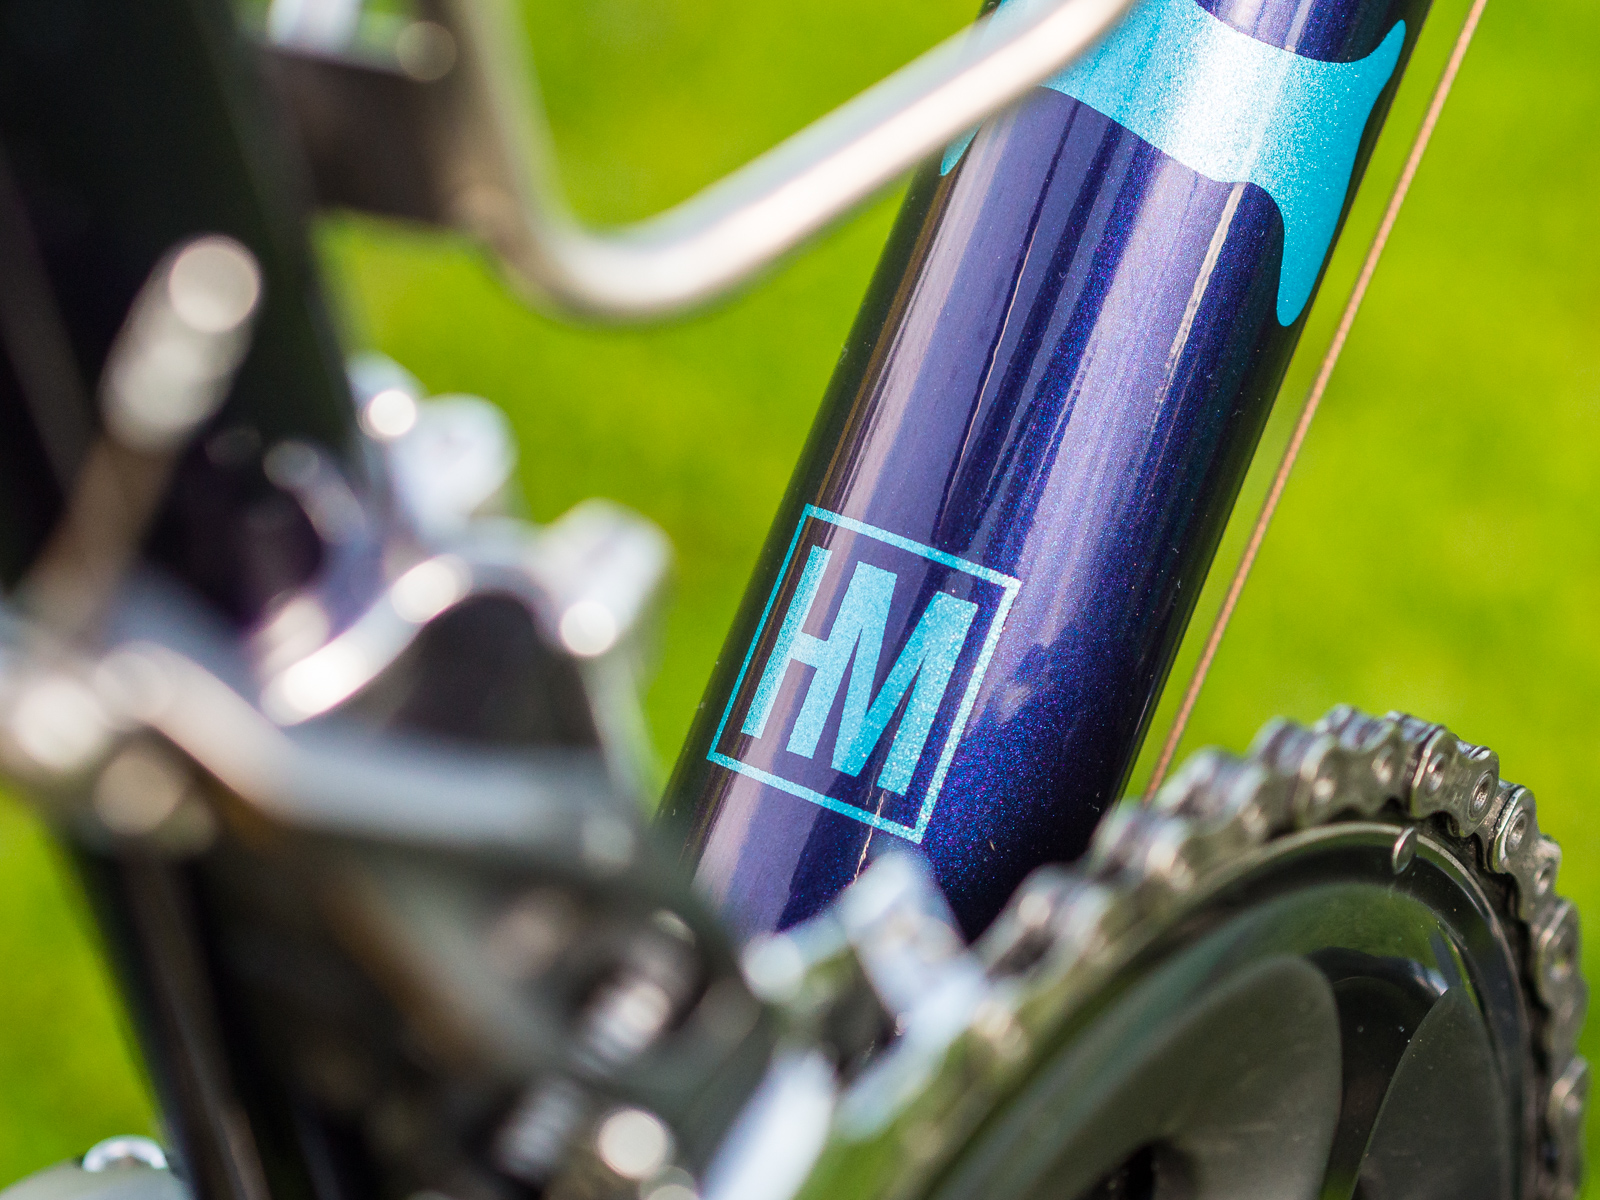 June 20. Technically, I took delivery of my Naked steel racer back in April, but it took a few months to collect the small parts I wanted to finalize the build. This shot captures the combination of stainless steel, turquoise, and burple flake when the sun hits the frame  juuuuuust  right.